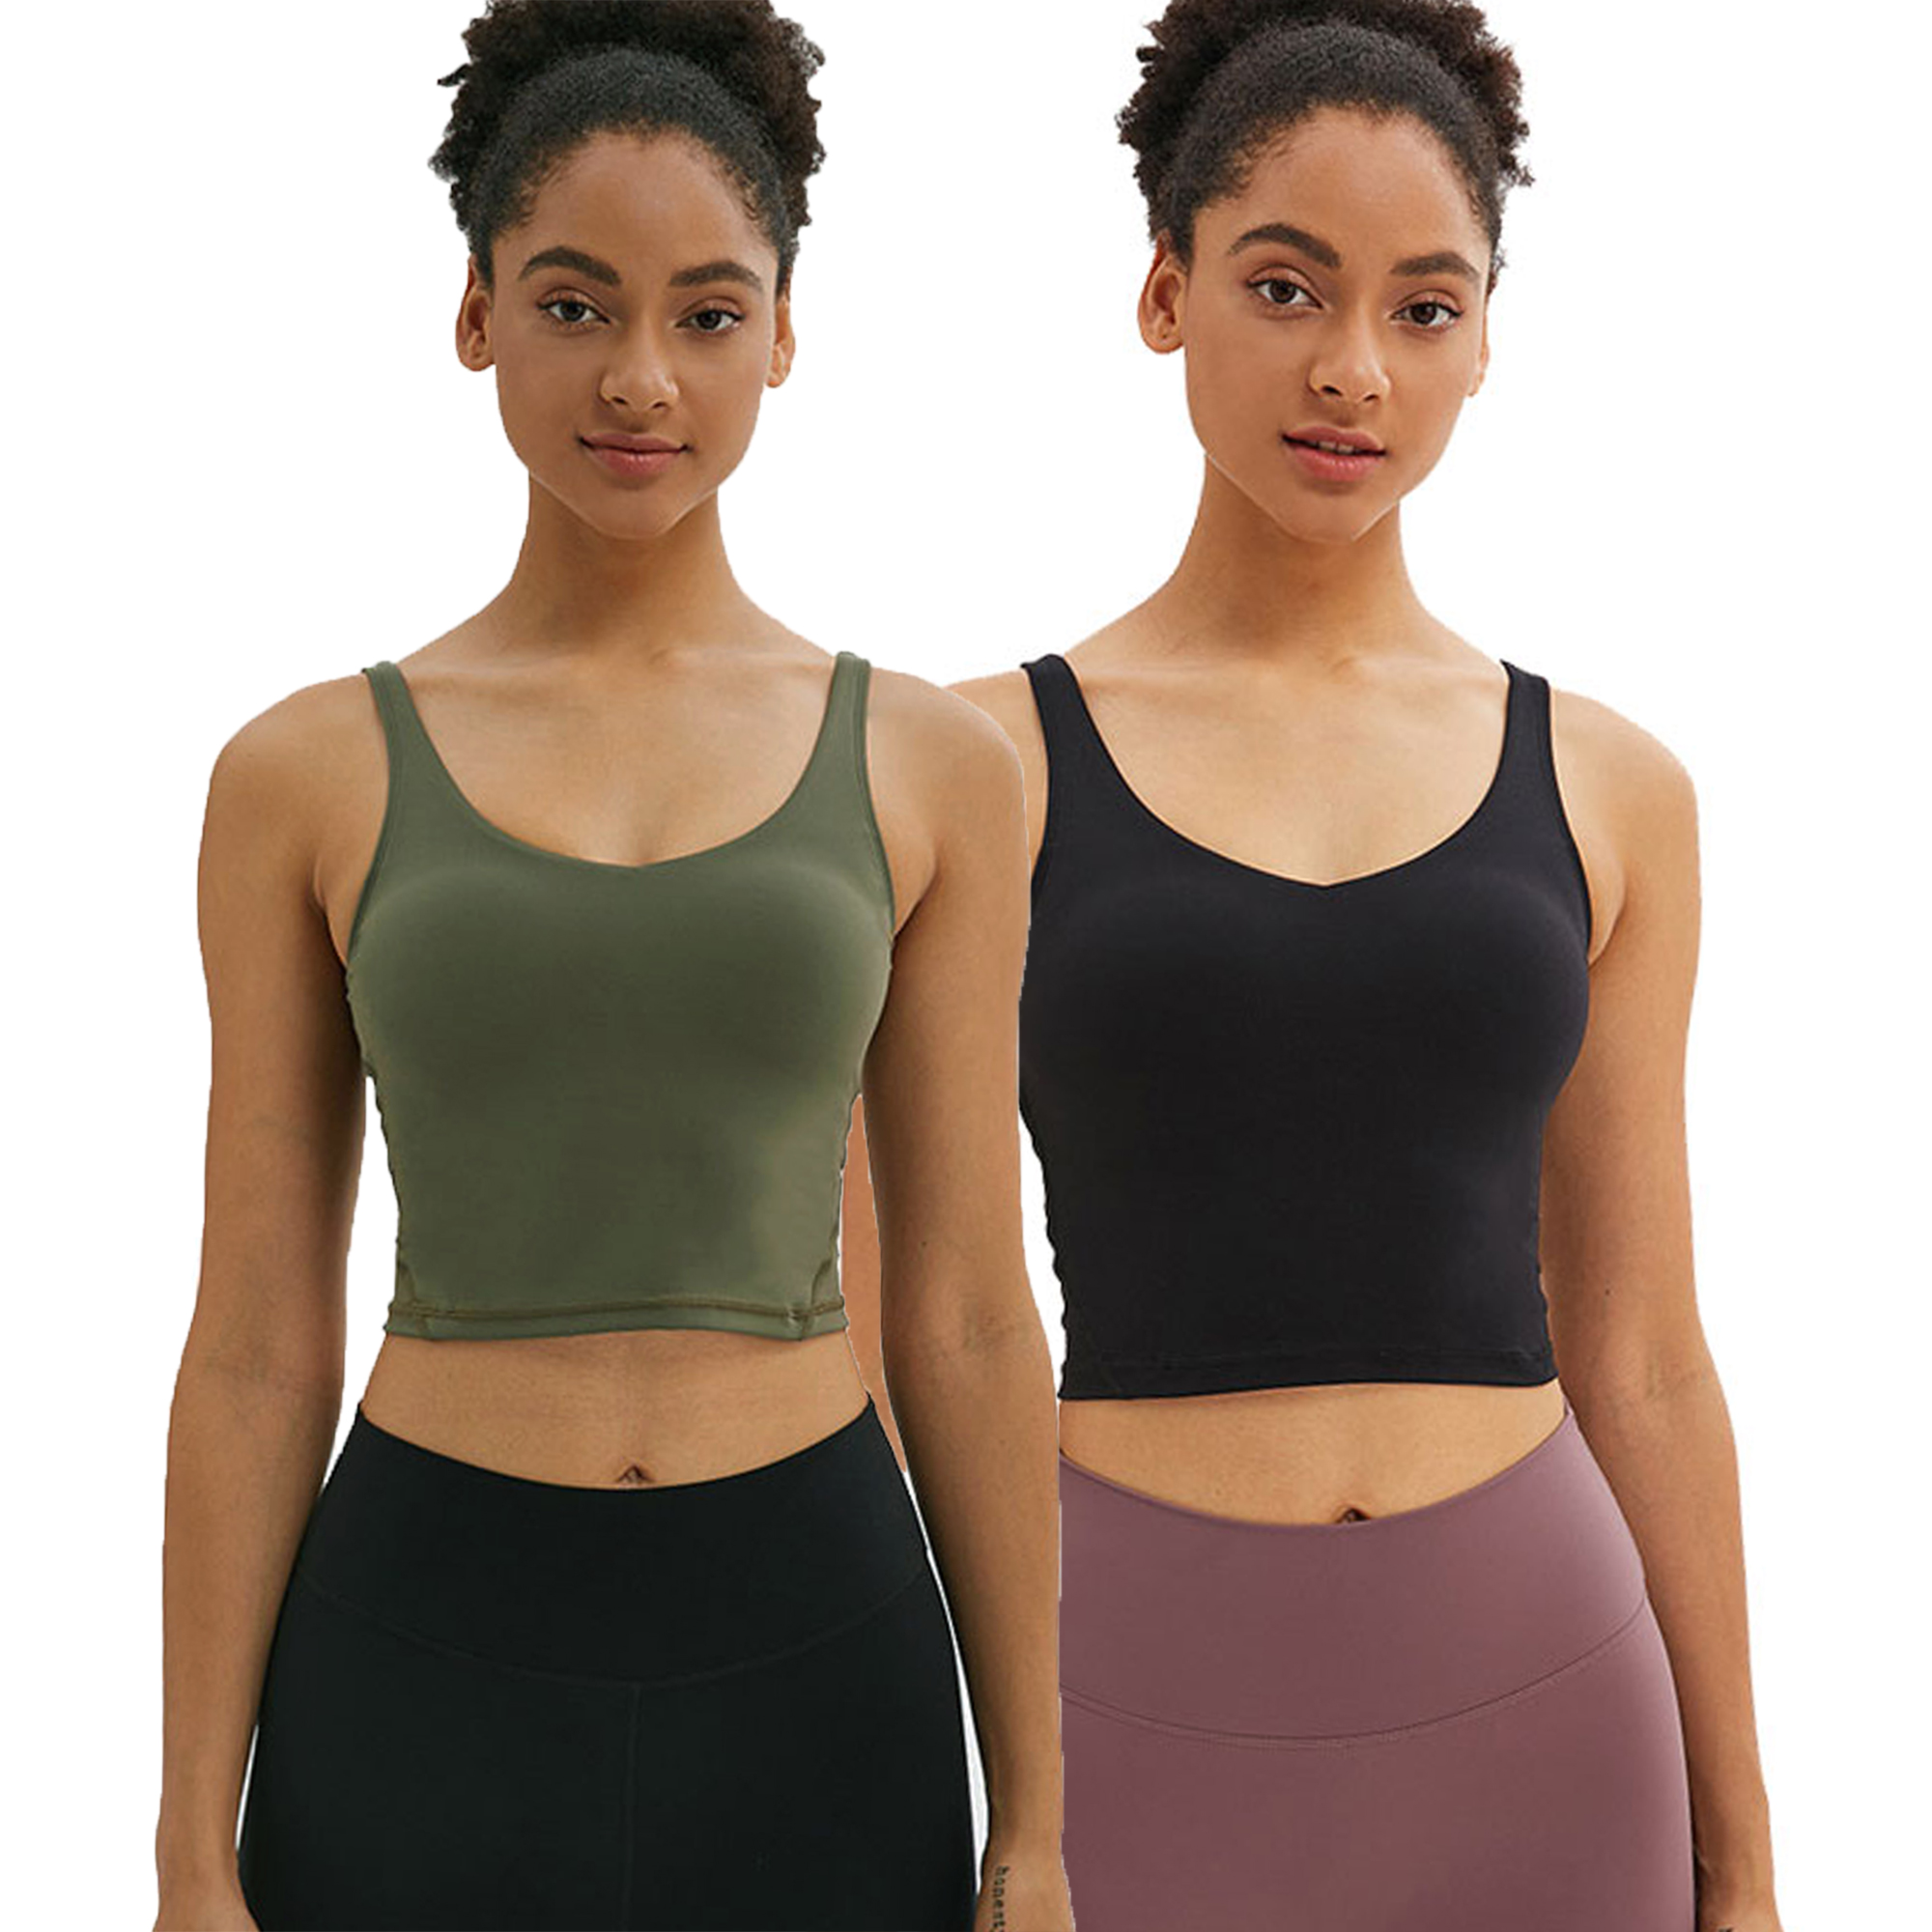 Crop Tank Tops for Women Workout Longline Padded Support Sports Bras Yoga Shirts for Gym Running Jogging Fitness